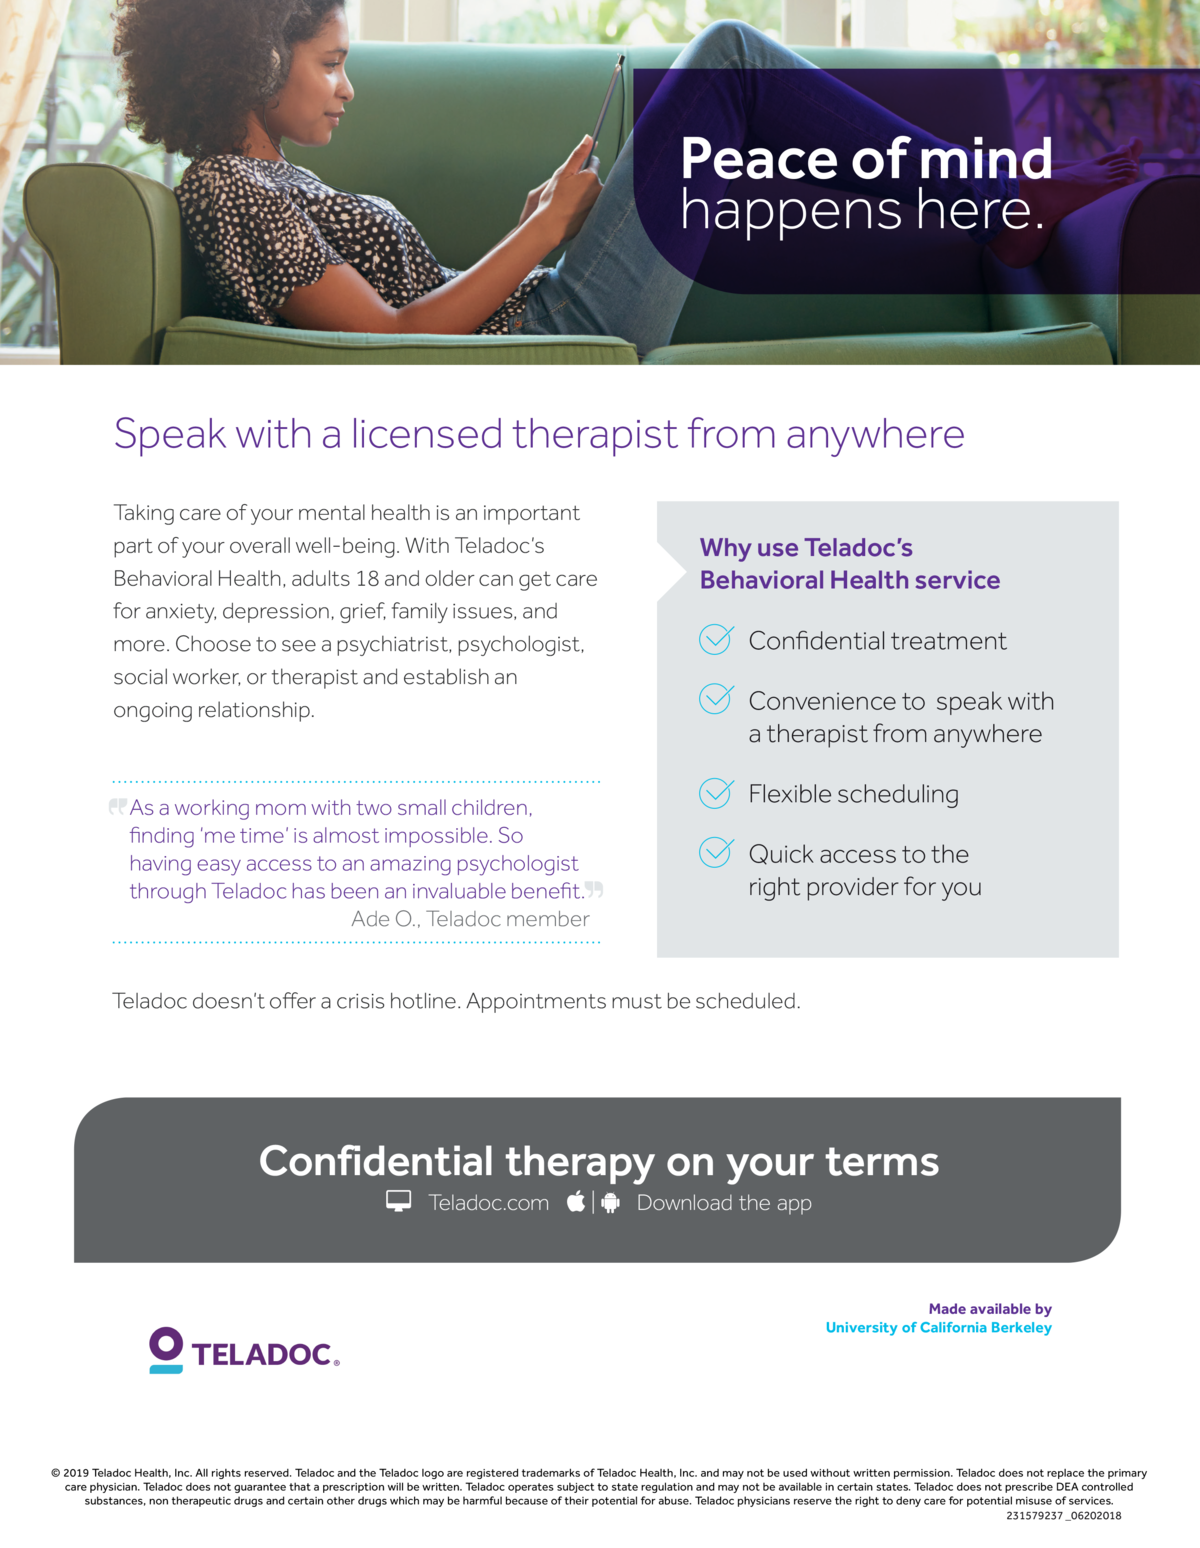 teladoc flier for behavioral health therapists